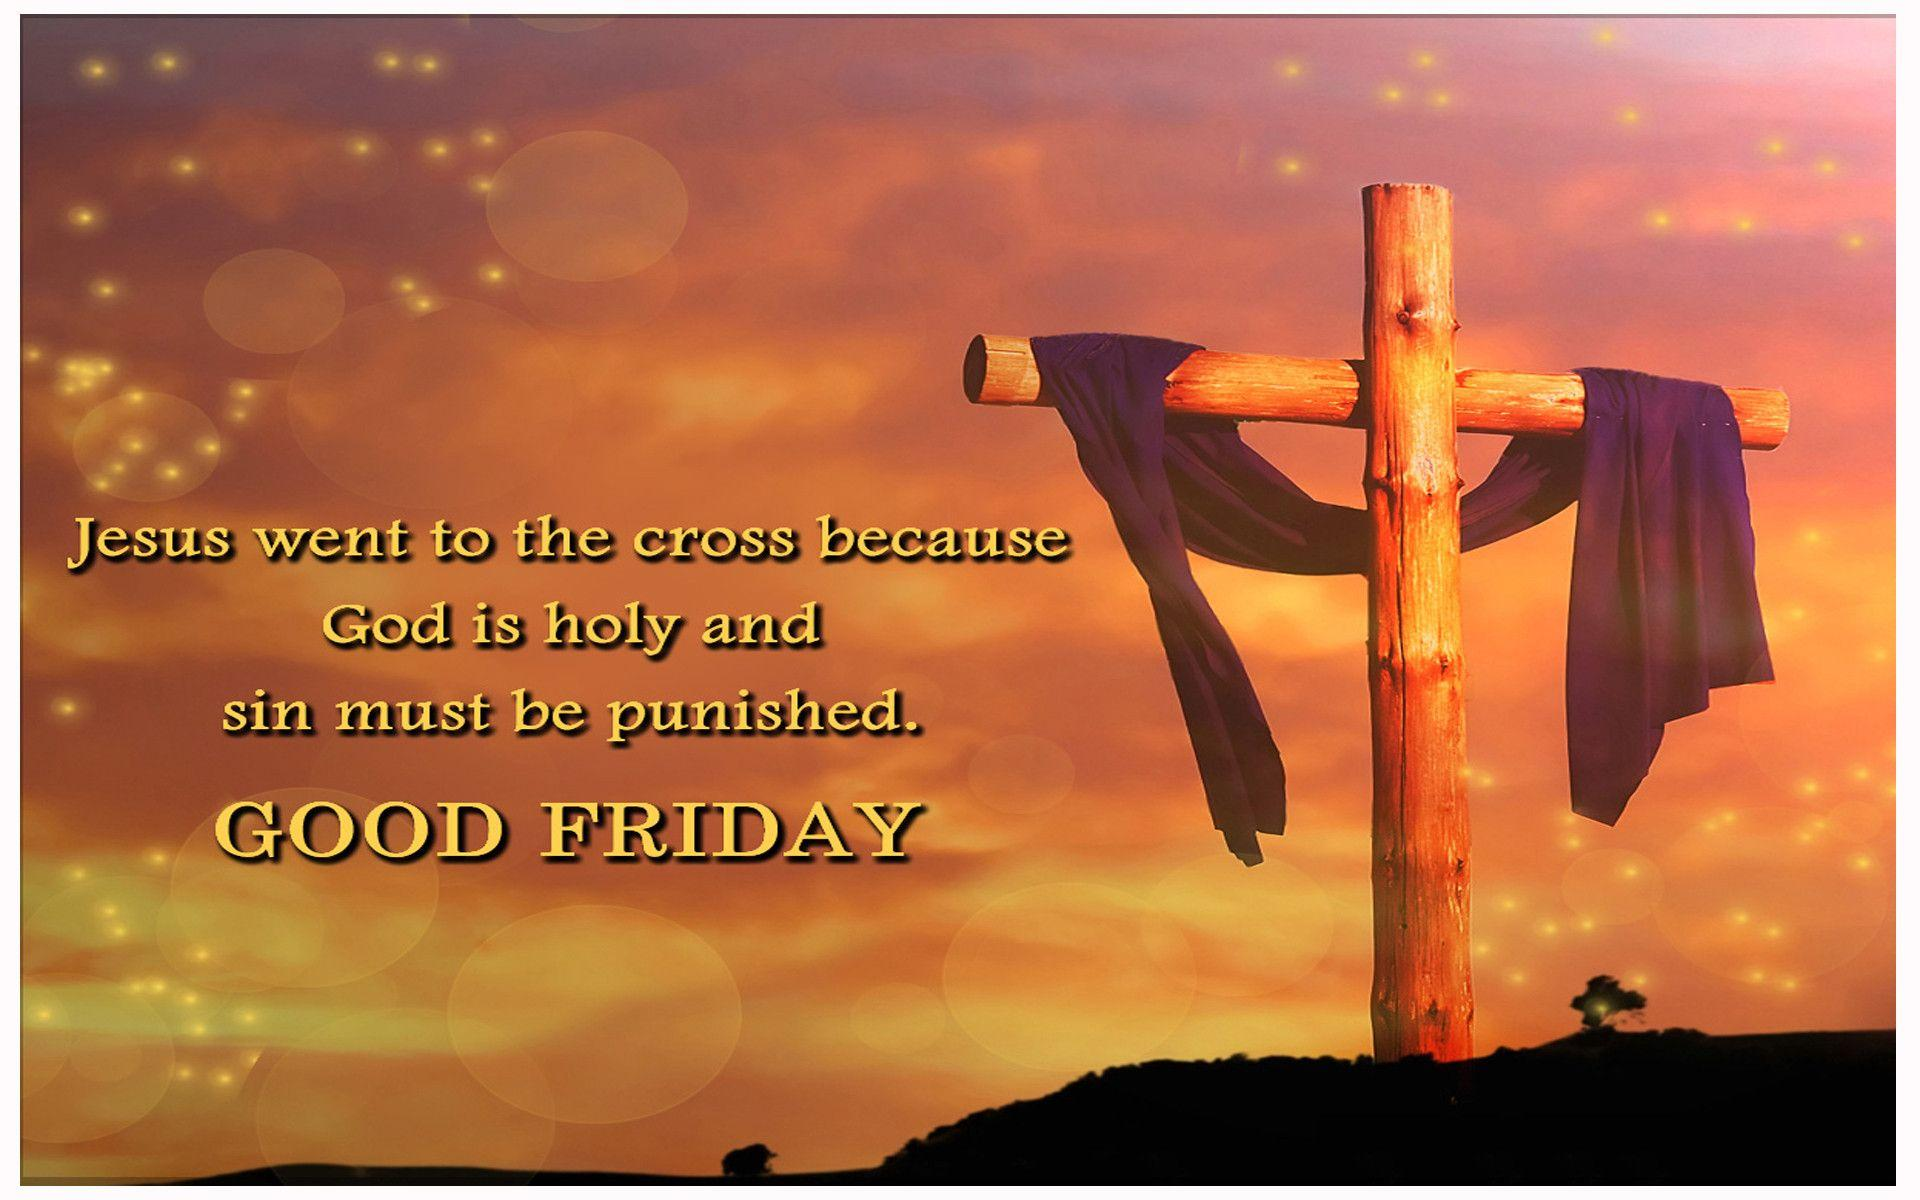 Happy good friday festival wishes images 5